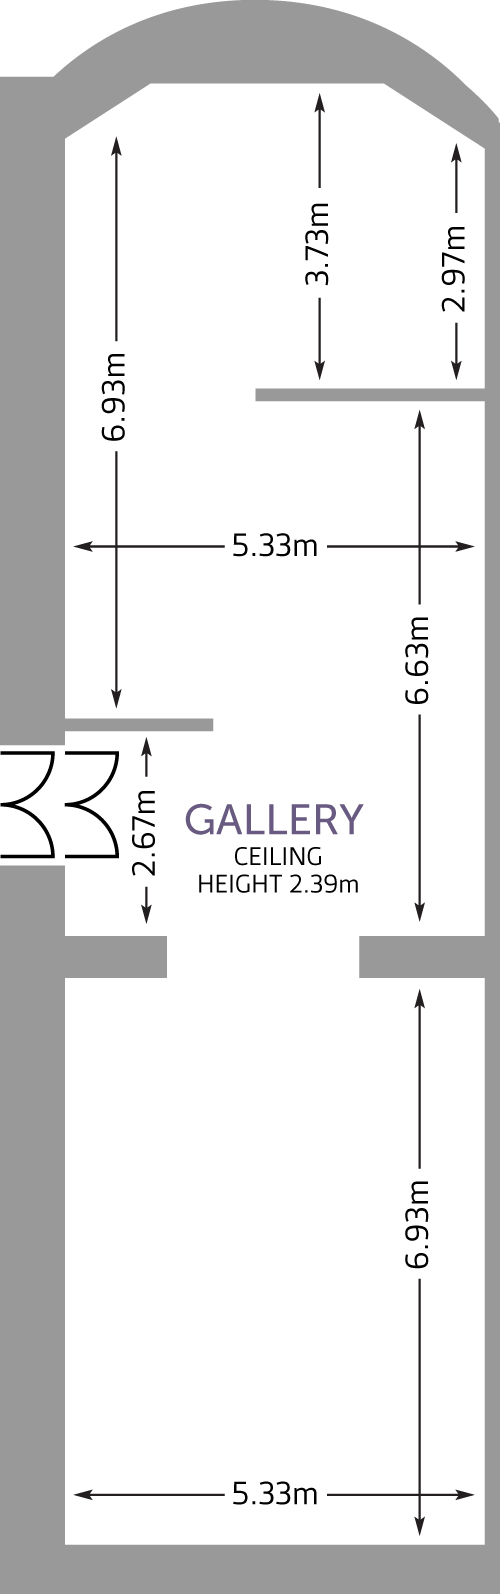 Asia House Gallery